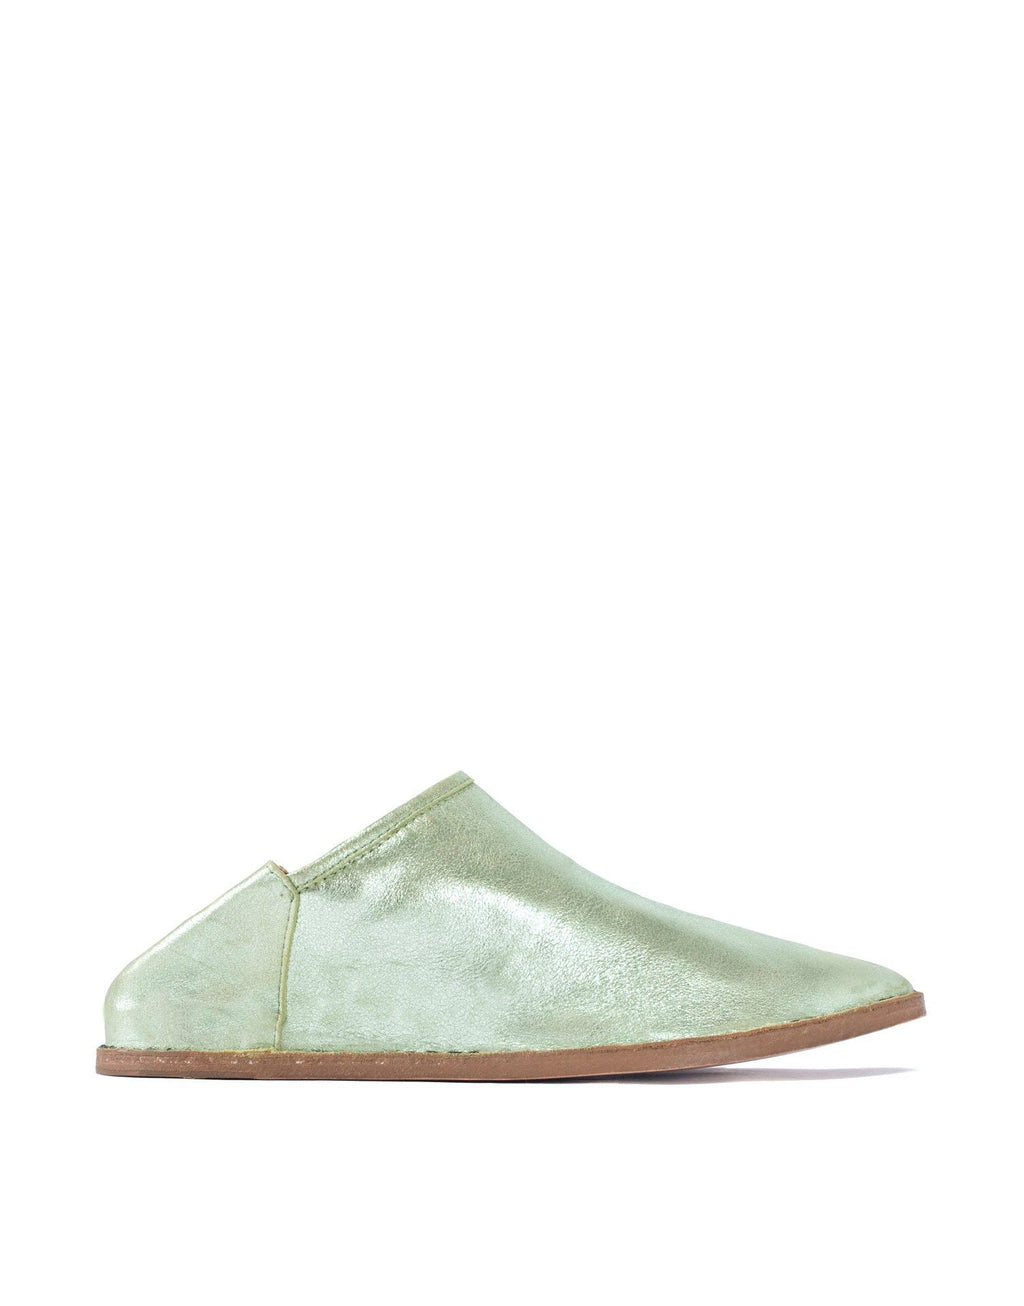 Mint metallic soft suede slip on slipper shoe by designer Georgina Goodman, complete with hidden 2cm concealed wedge heel for comfort